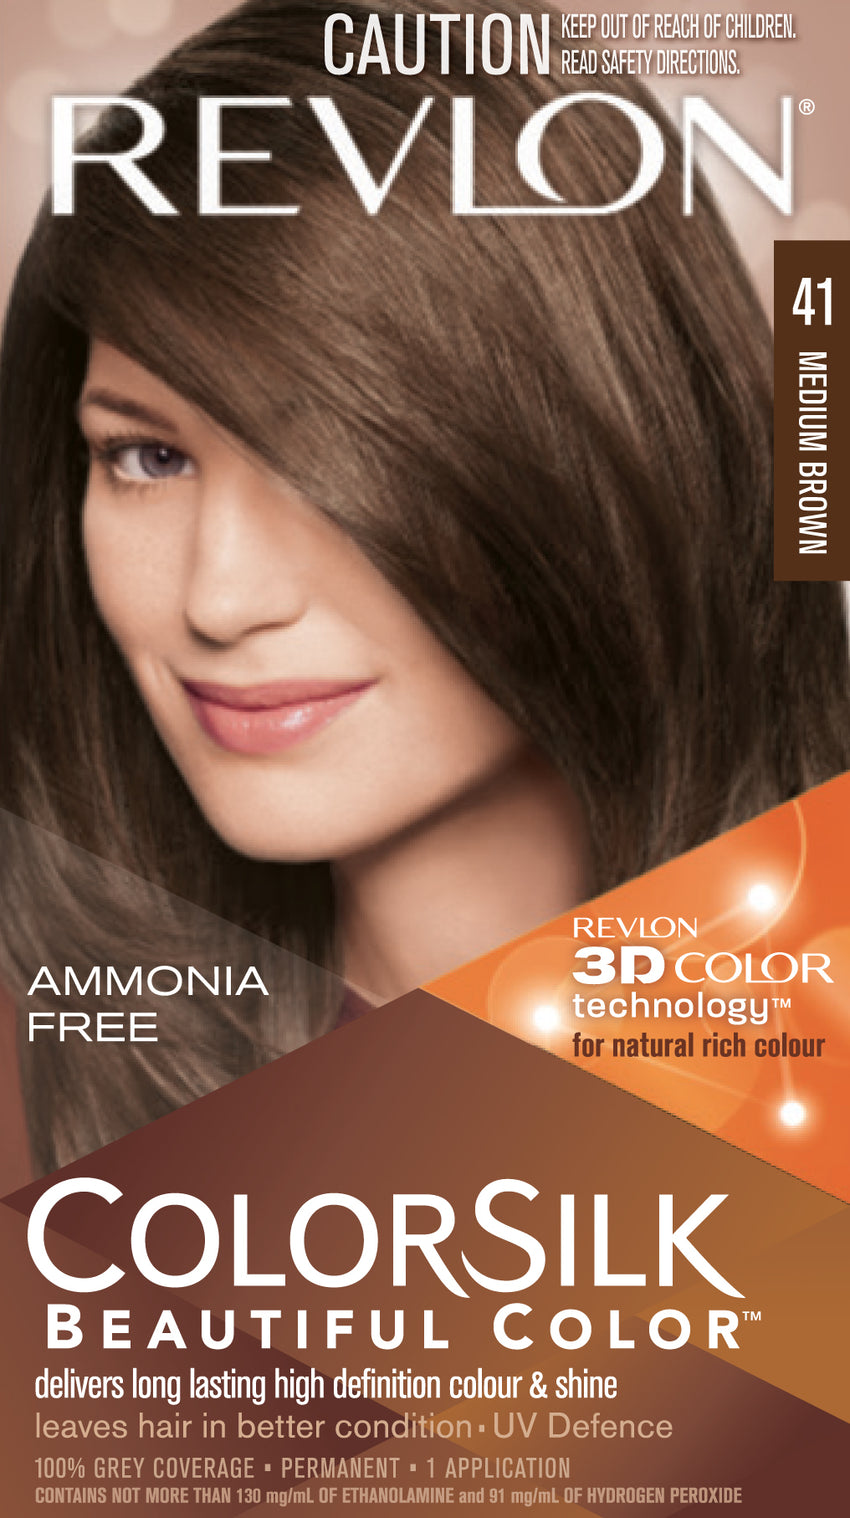 Revlon Colorsilk Medium Brown 41 - Grocery Deals